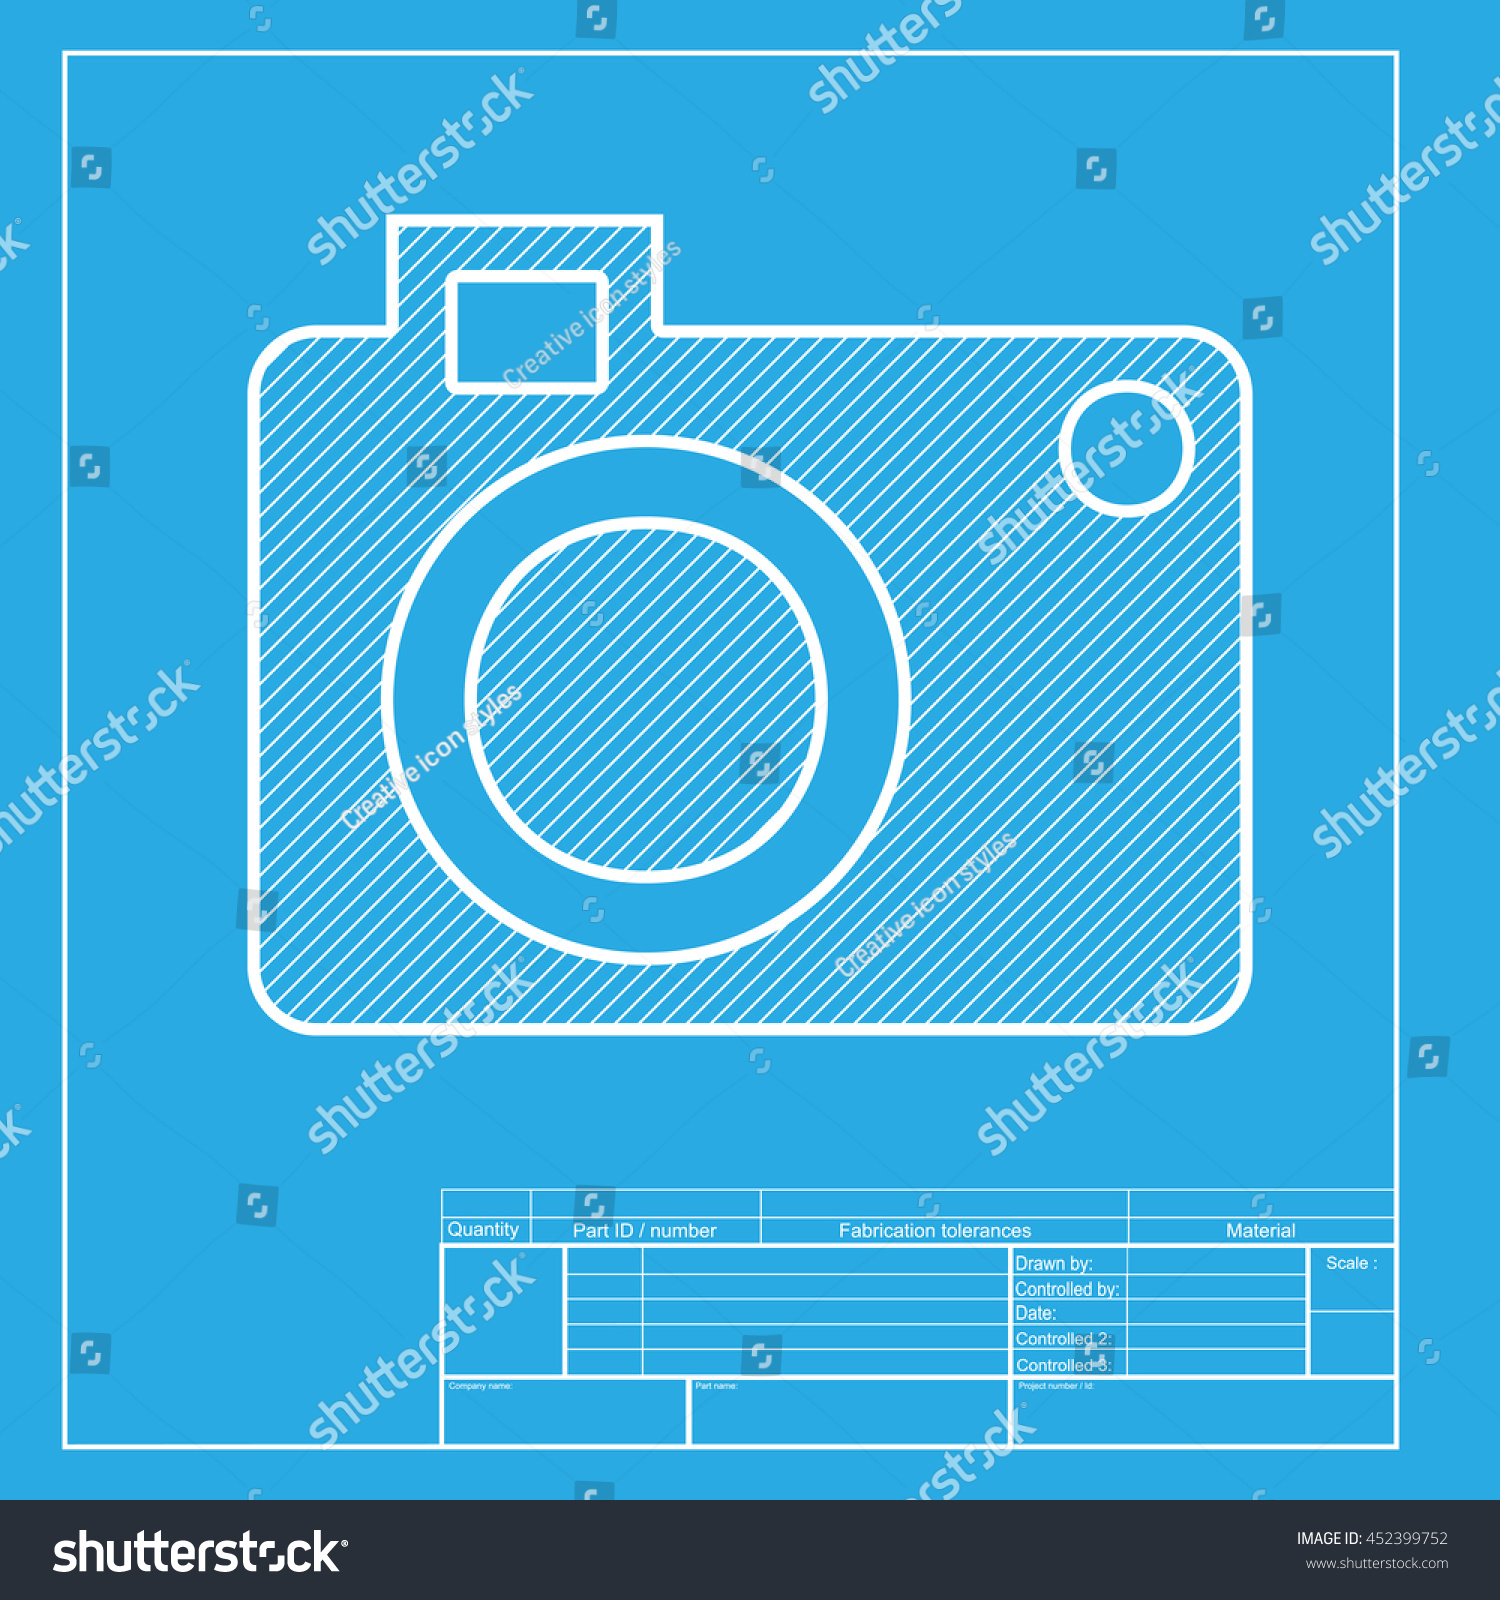 Digital camera sign white section icon stock illustration 452399752 digital camera sign white section of icon on blueprint template malvernweather Choice Image